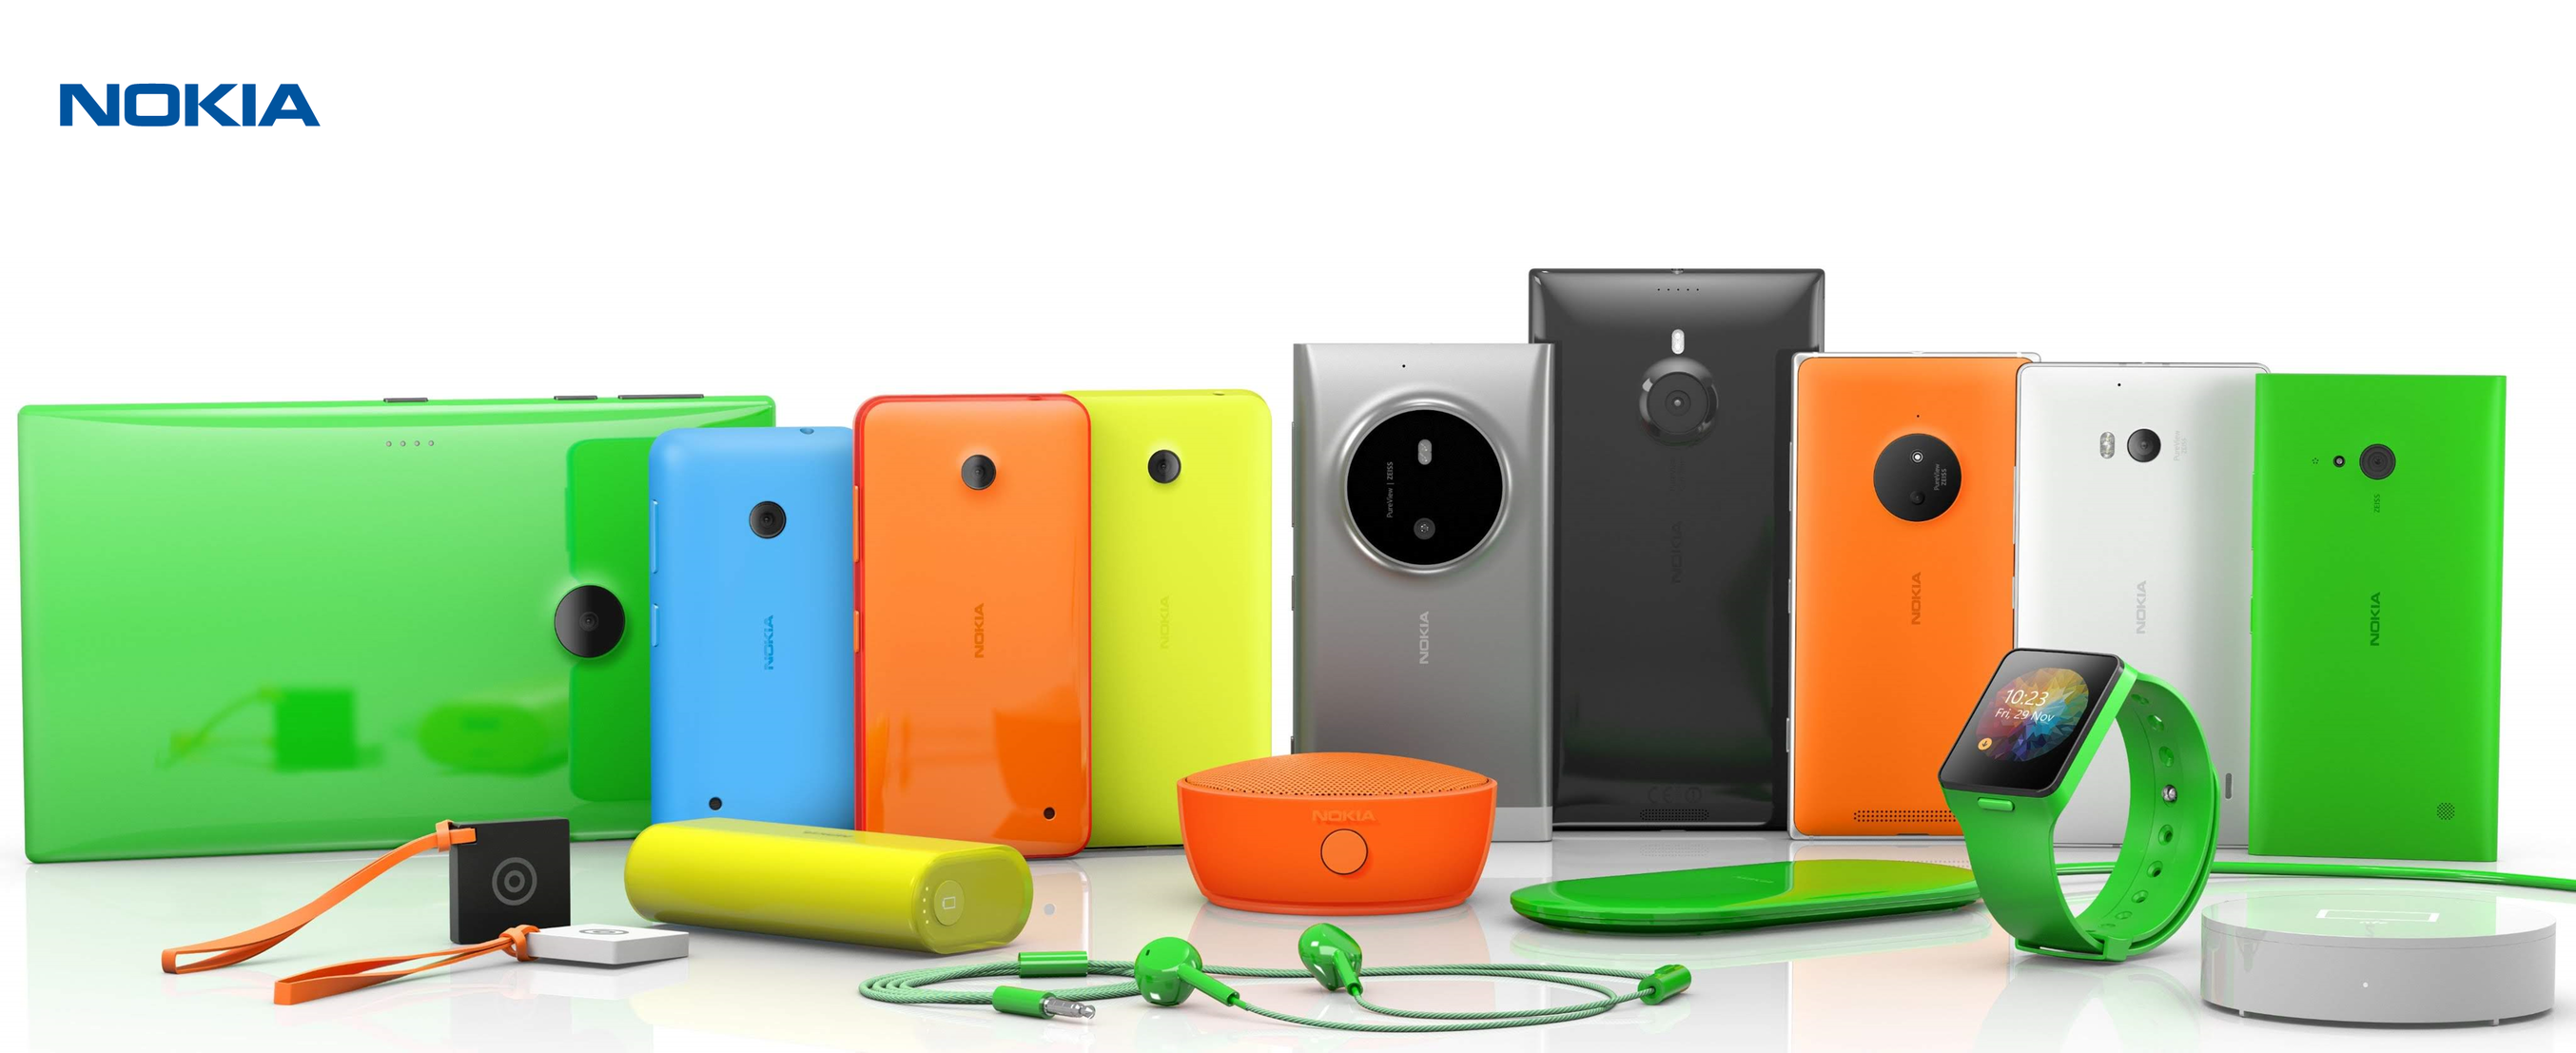 Nokia Lumia phones and tablets, and Nokia accesories and smartwatch (Nokia Moonraker).